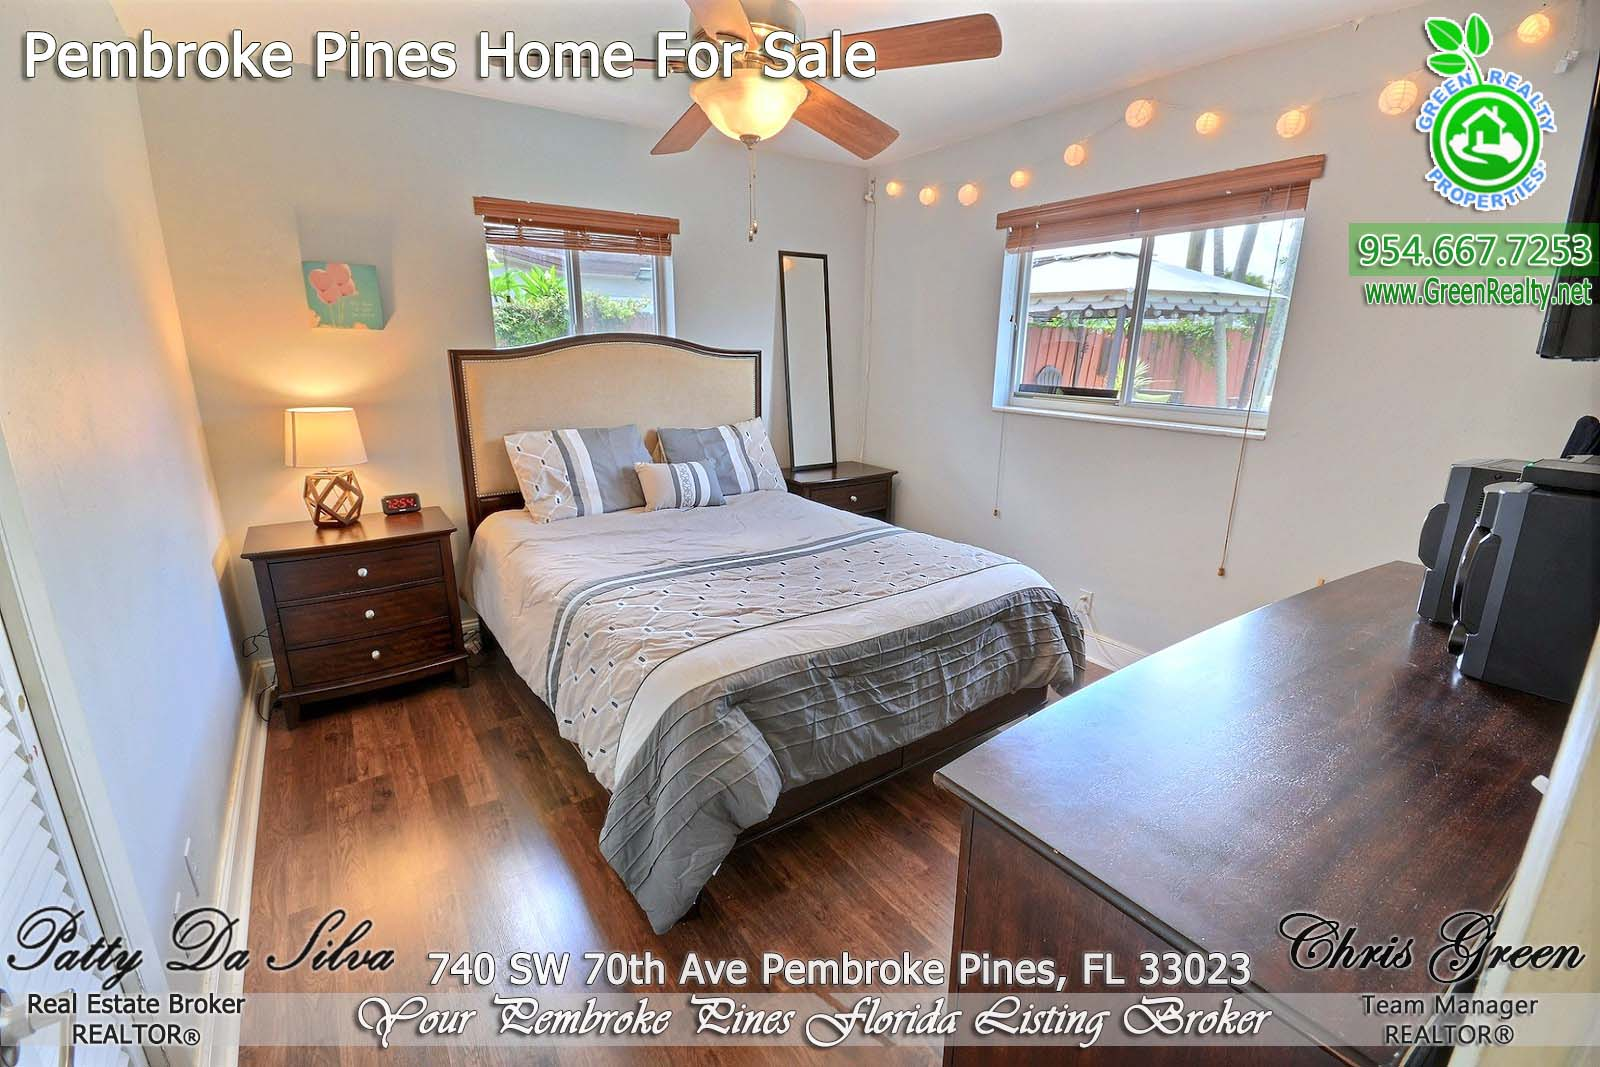 20 Pembroke Pines Real Estate Agents (5)